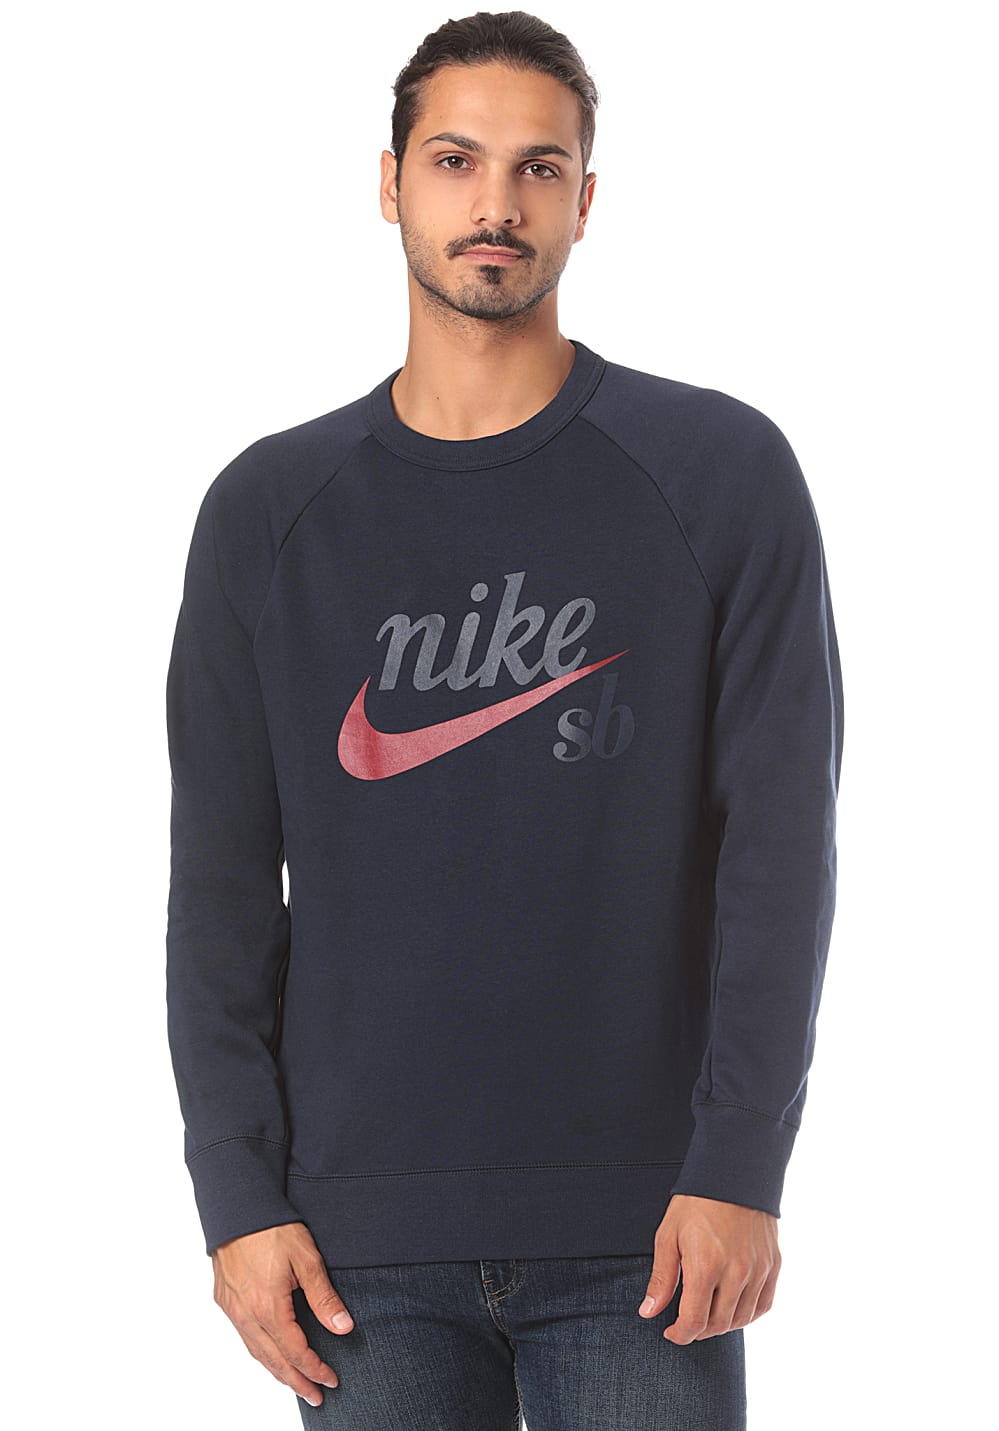 cheapest price big discount designer fashion NIKE SB Top Icon Crw Gfx Hrtg - Sweatshirt für Herren - Blau ...